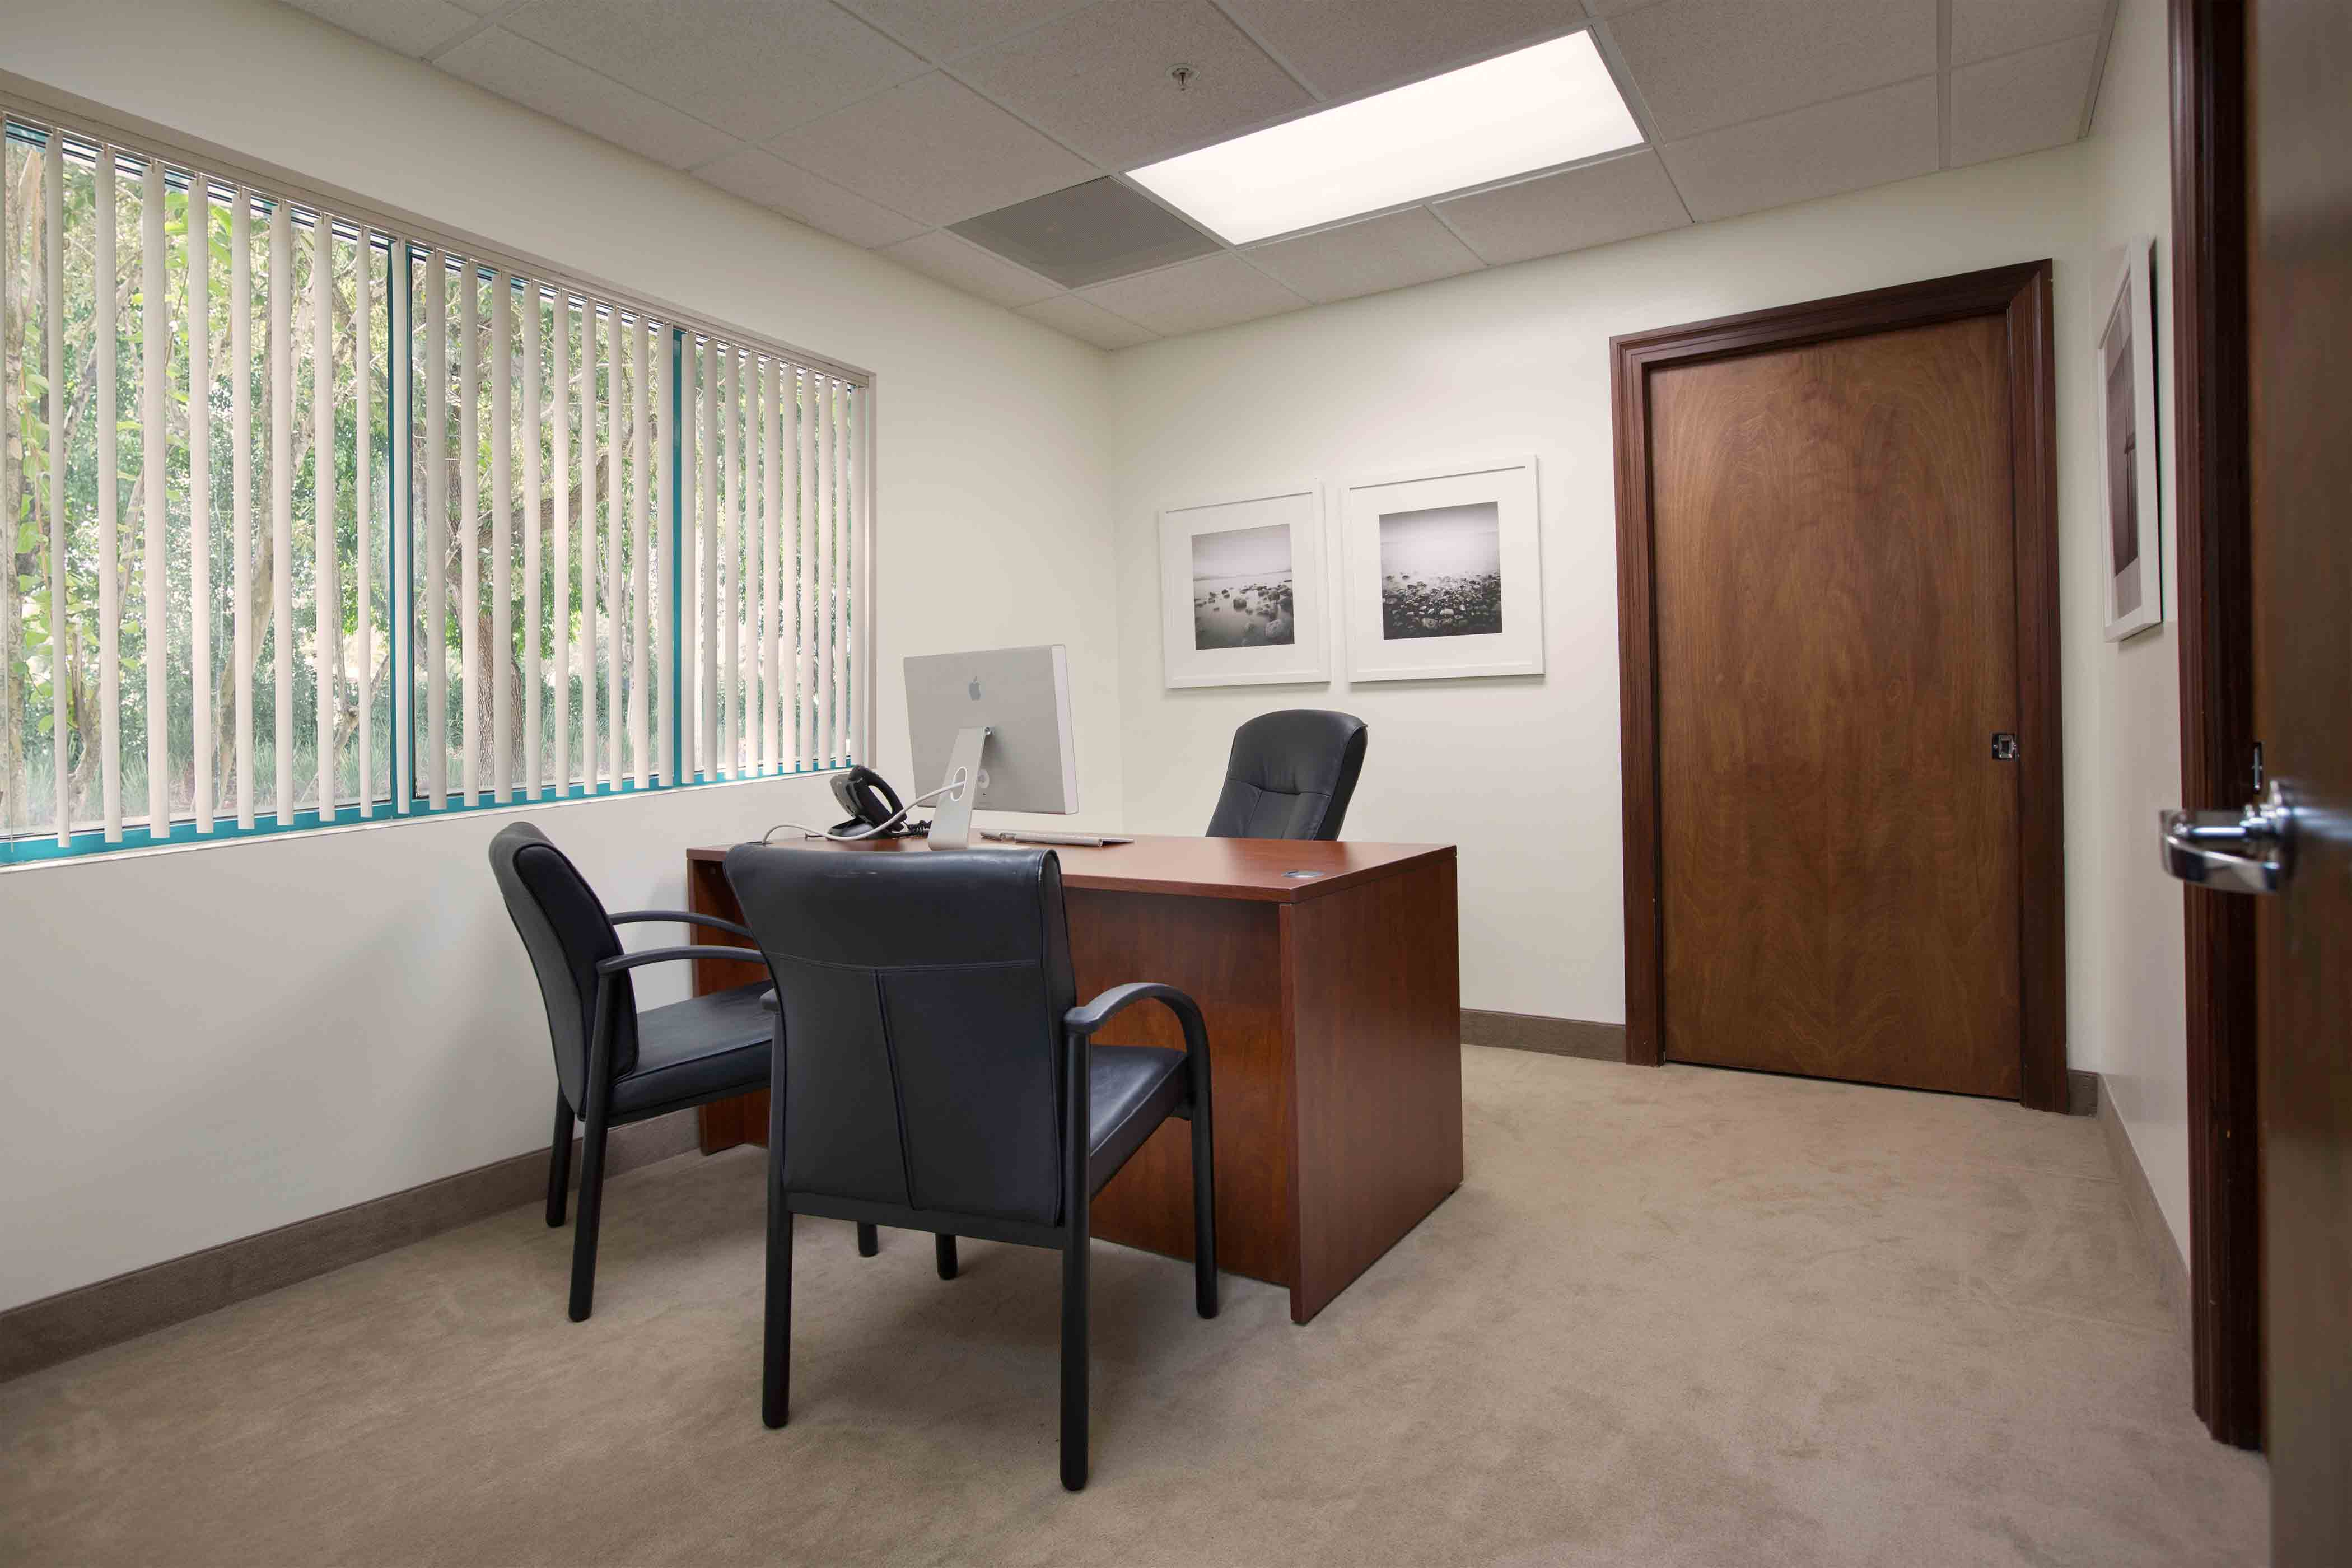 Private_Office_Workspace_Image